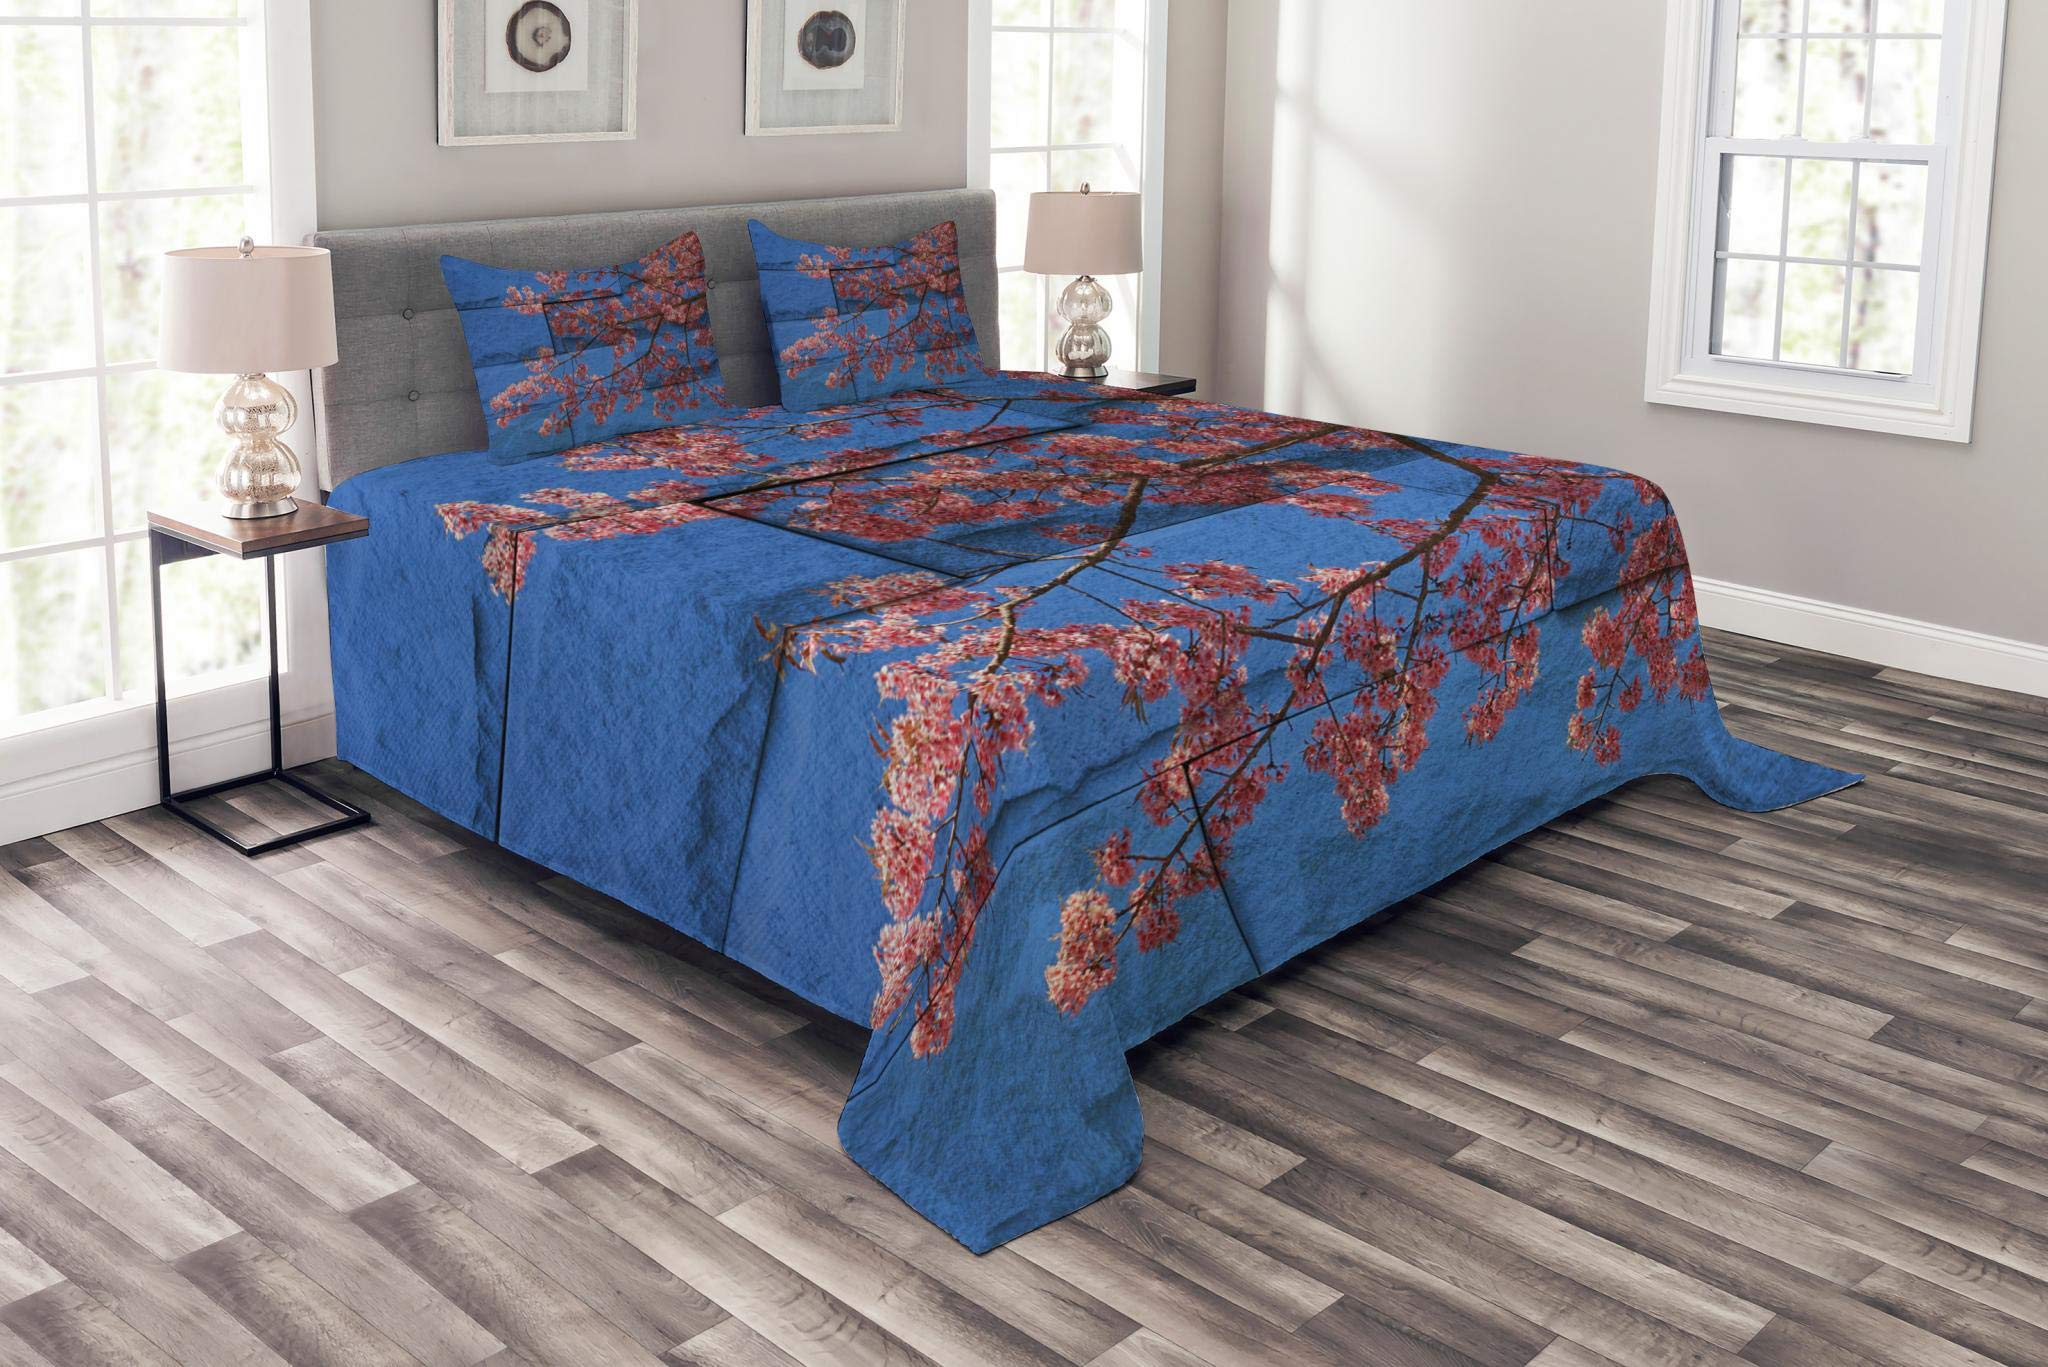 Lunarable Brick Wall Bedspread Set Queen Size, Thai Sakura Blossom Mural Branch with Flowers Spring Floral Eastern Beauty Print, Decorative Quilted 3 Piece Coverlet Set with 2 Pillow Shams, Pink Blue